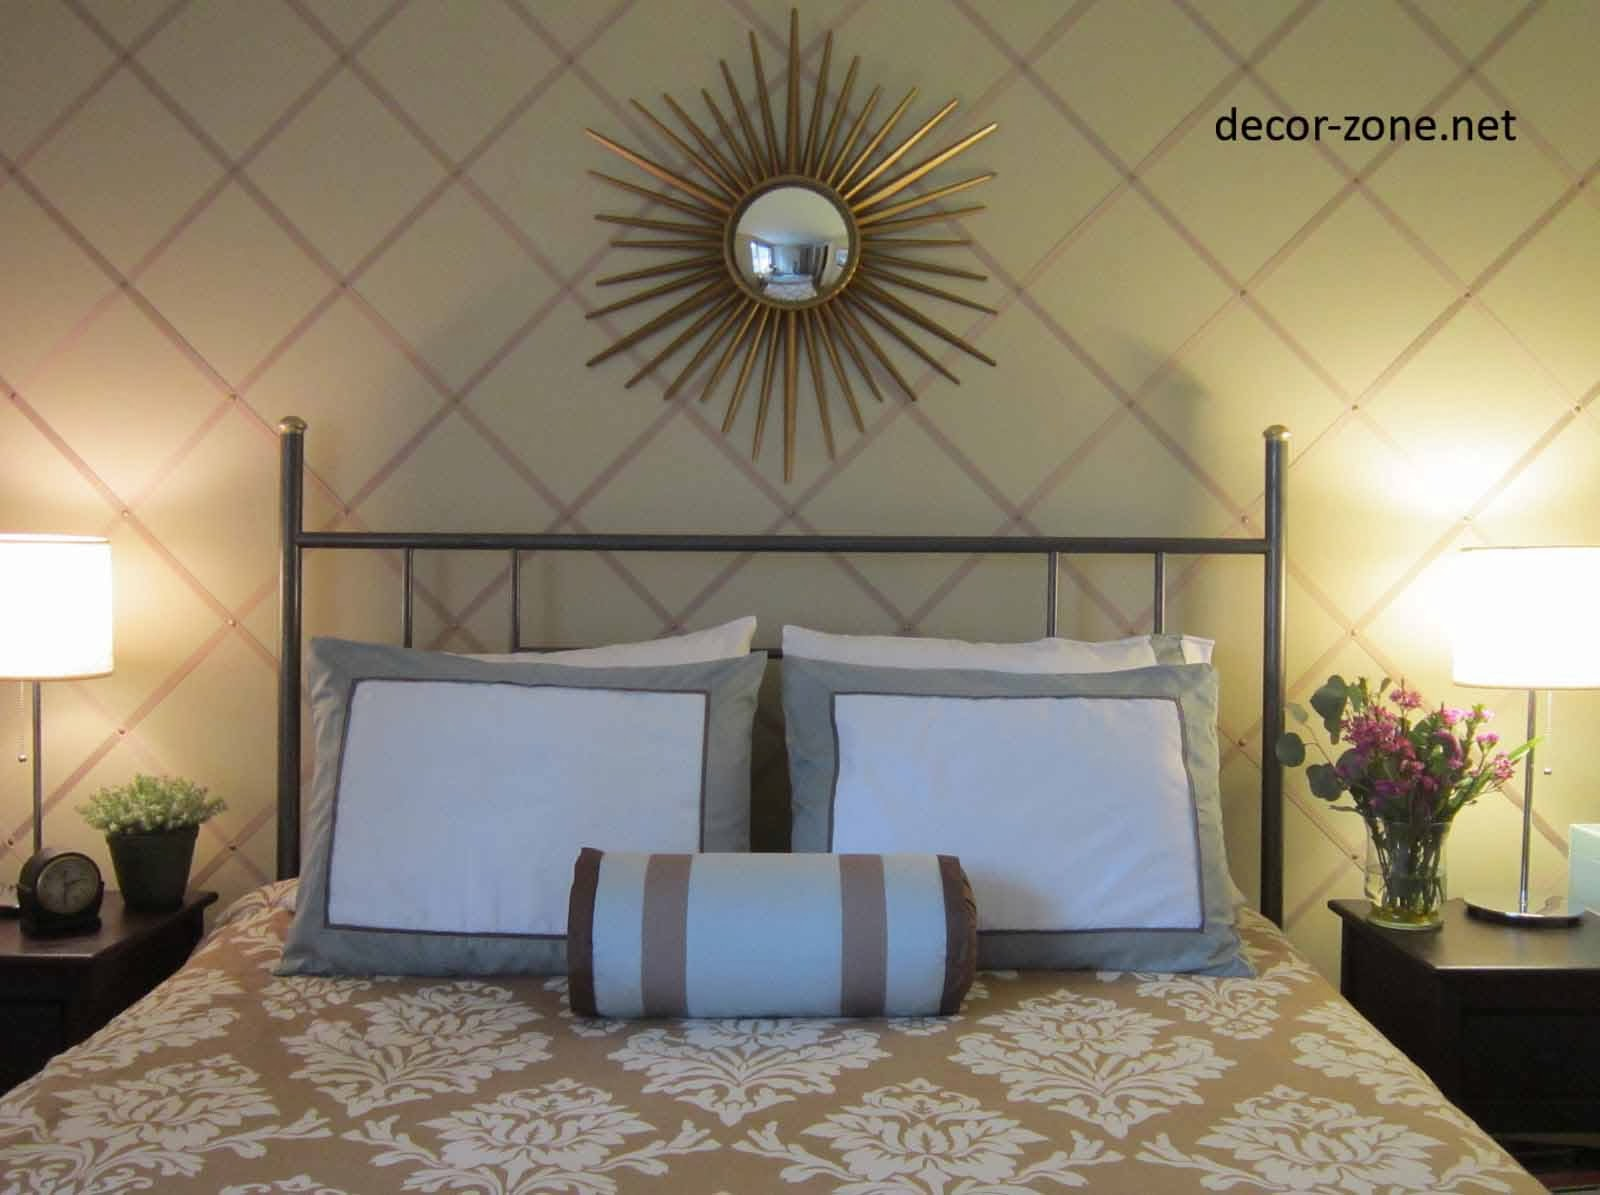 Master bedroom wall decoration ideas - Wall Mirrors Over The Bed Bedroom Wall Decor